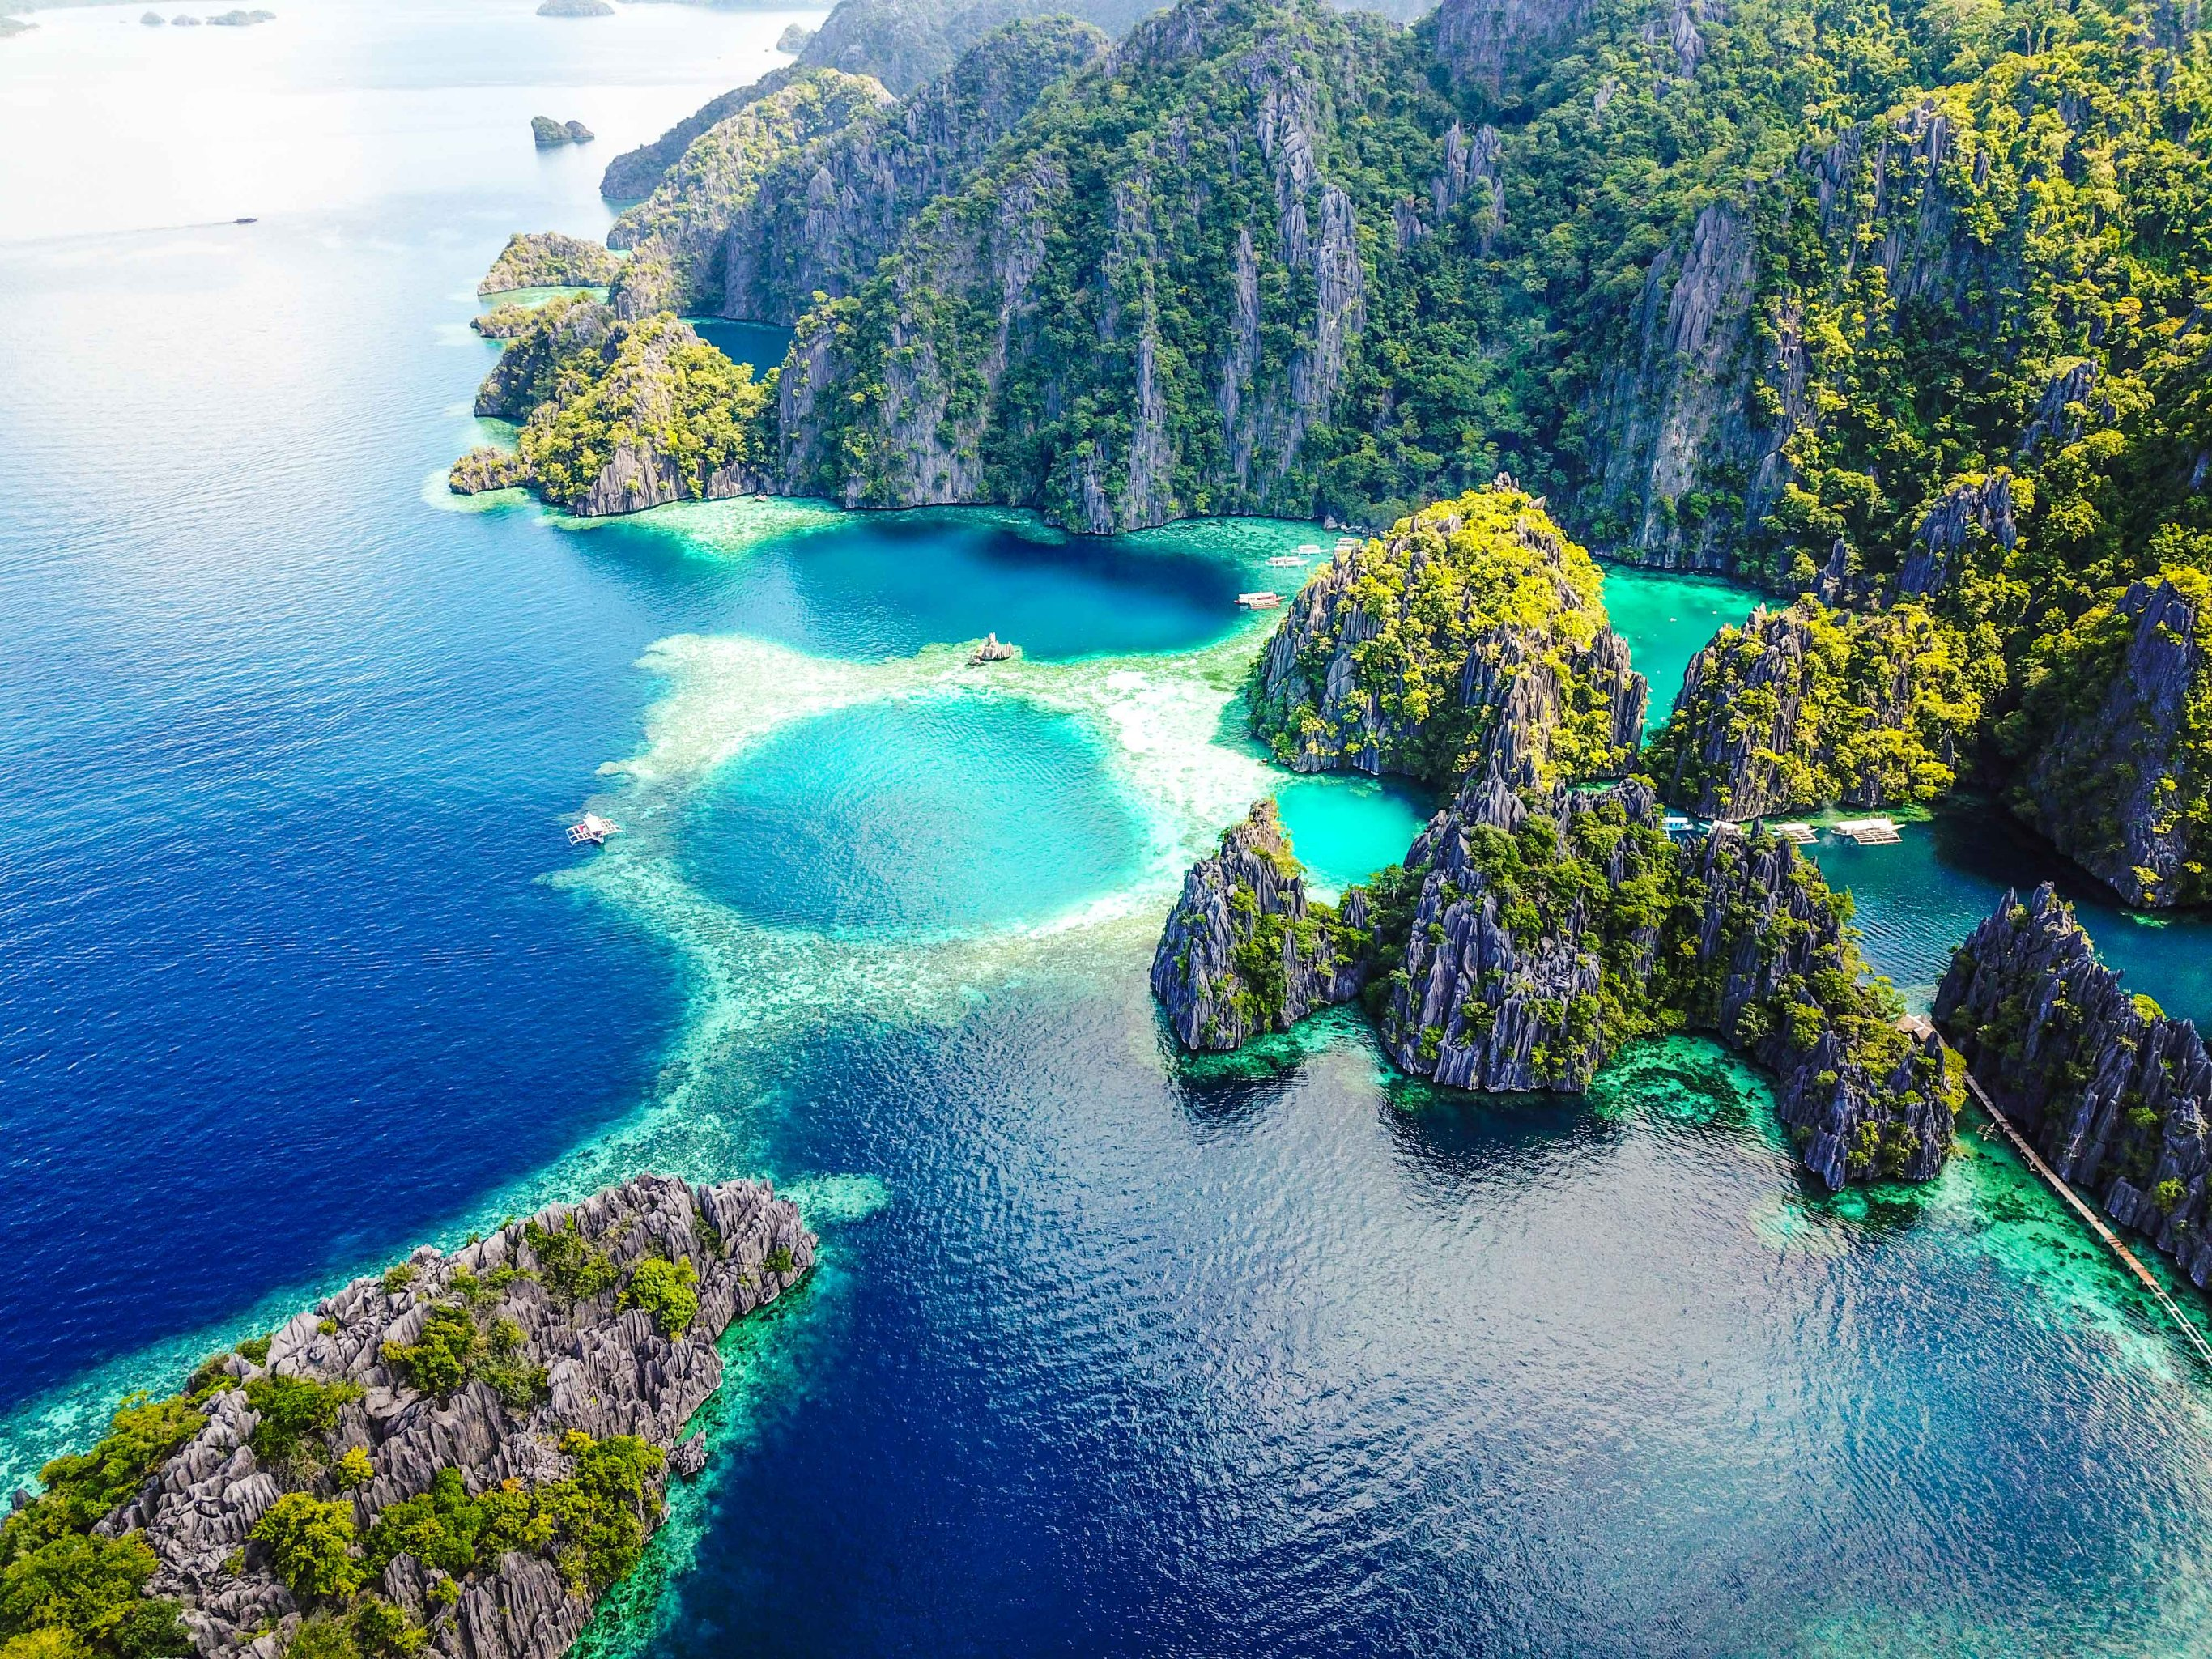 7-Day Palawan A World of Water - Philippines Itinerary